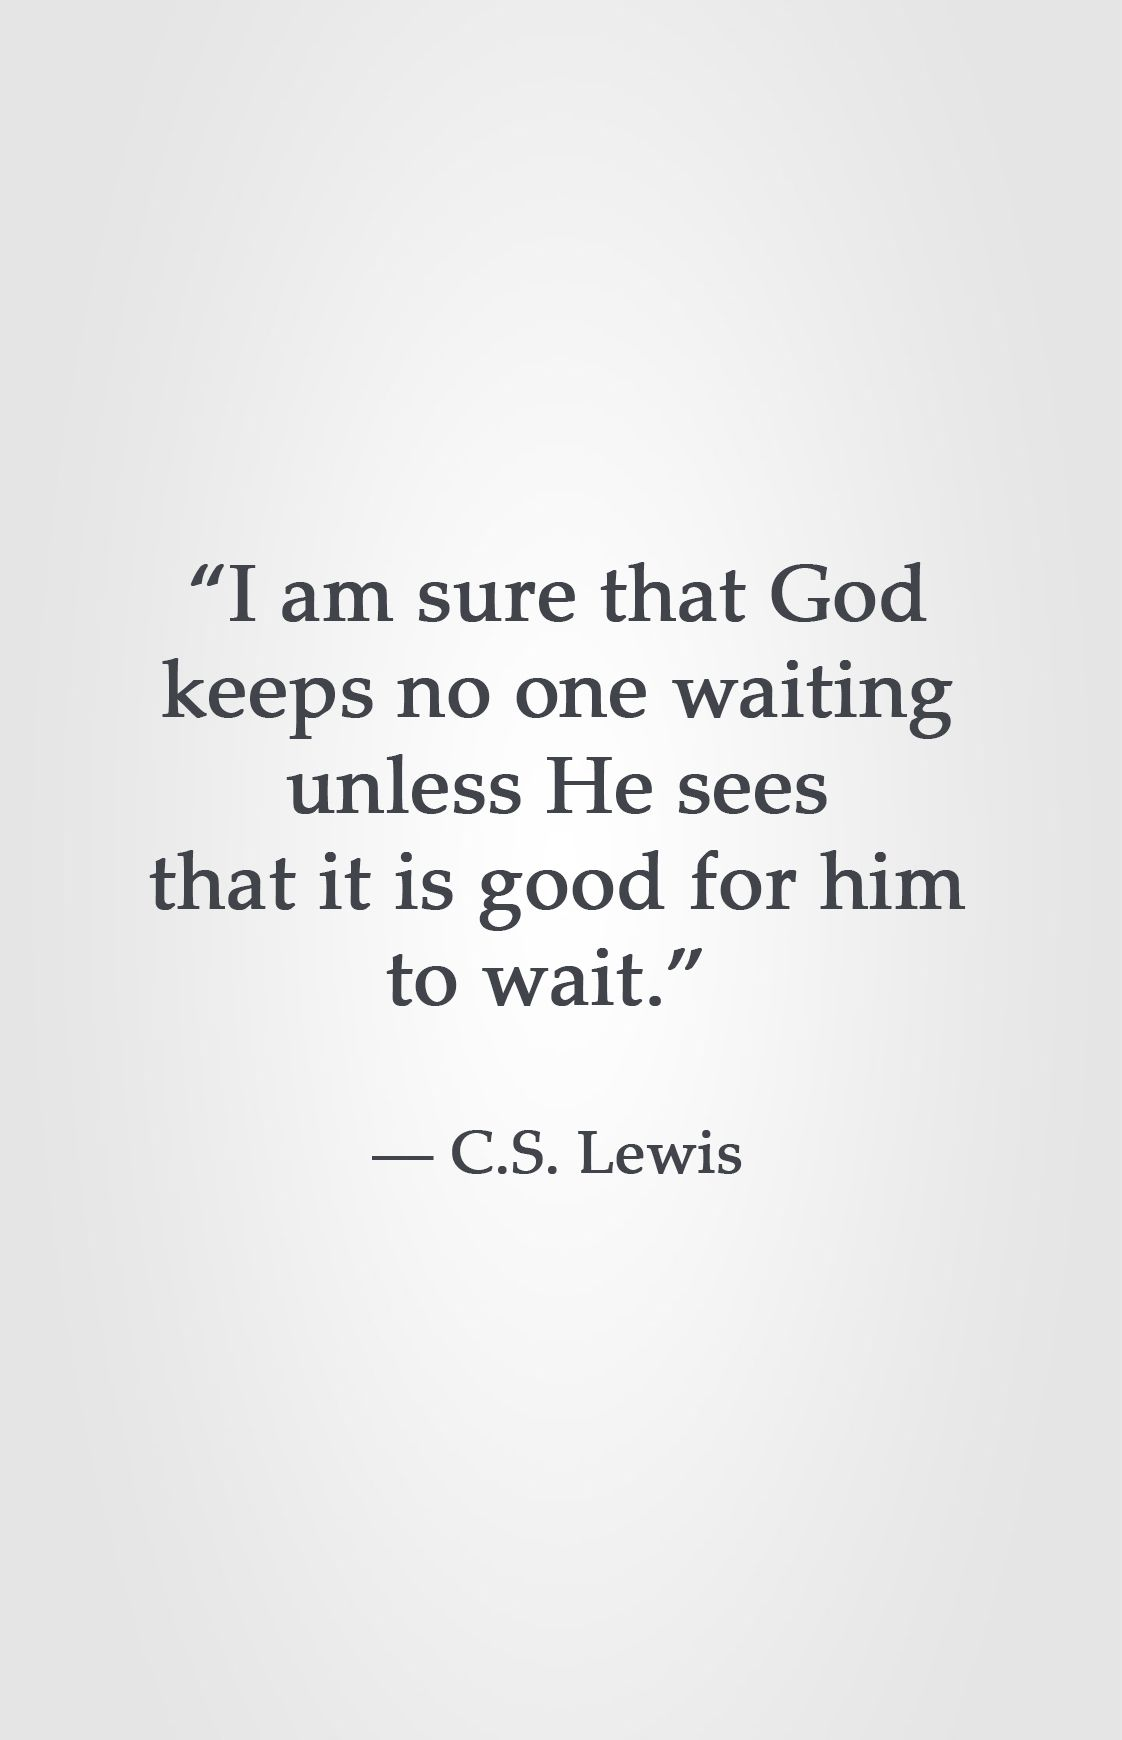 I Am Sure That God Keeps No One Waiting Unless He Sees That It Is